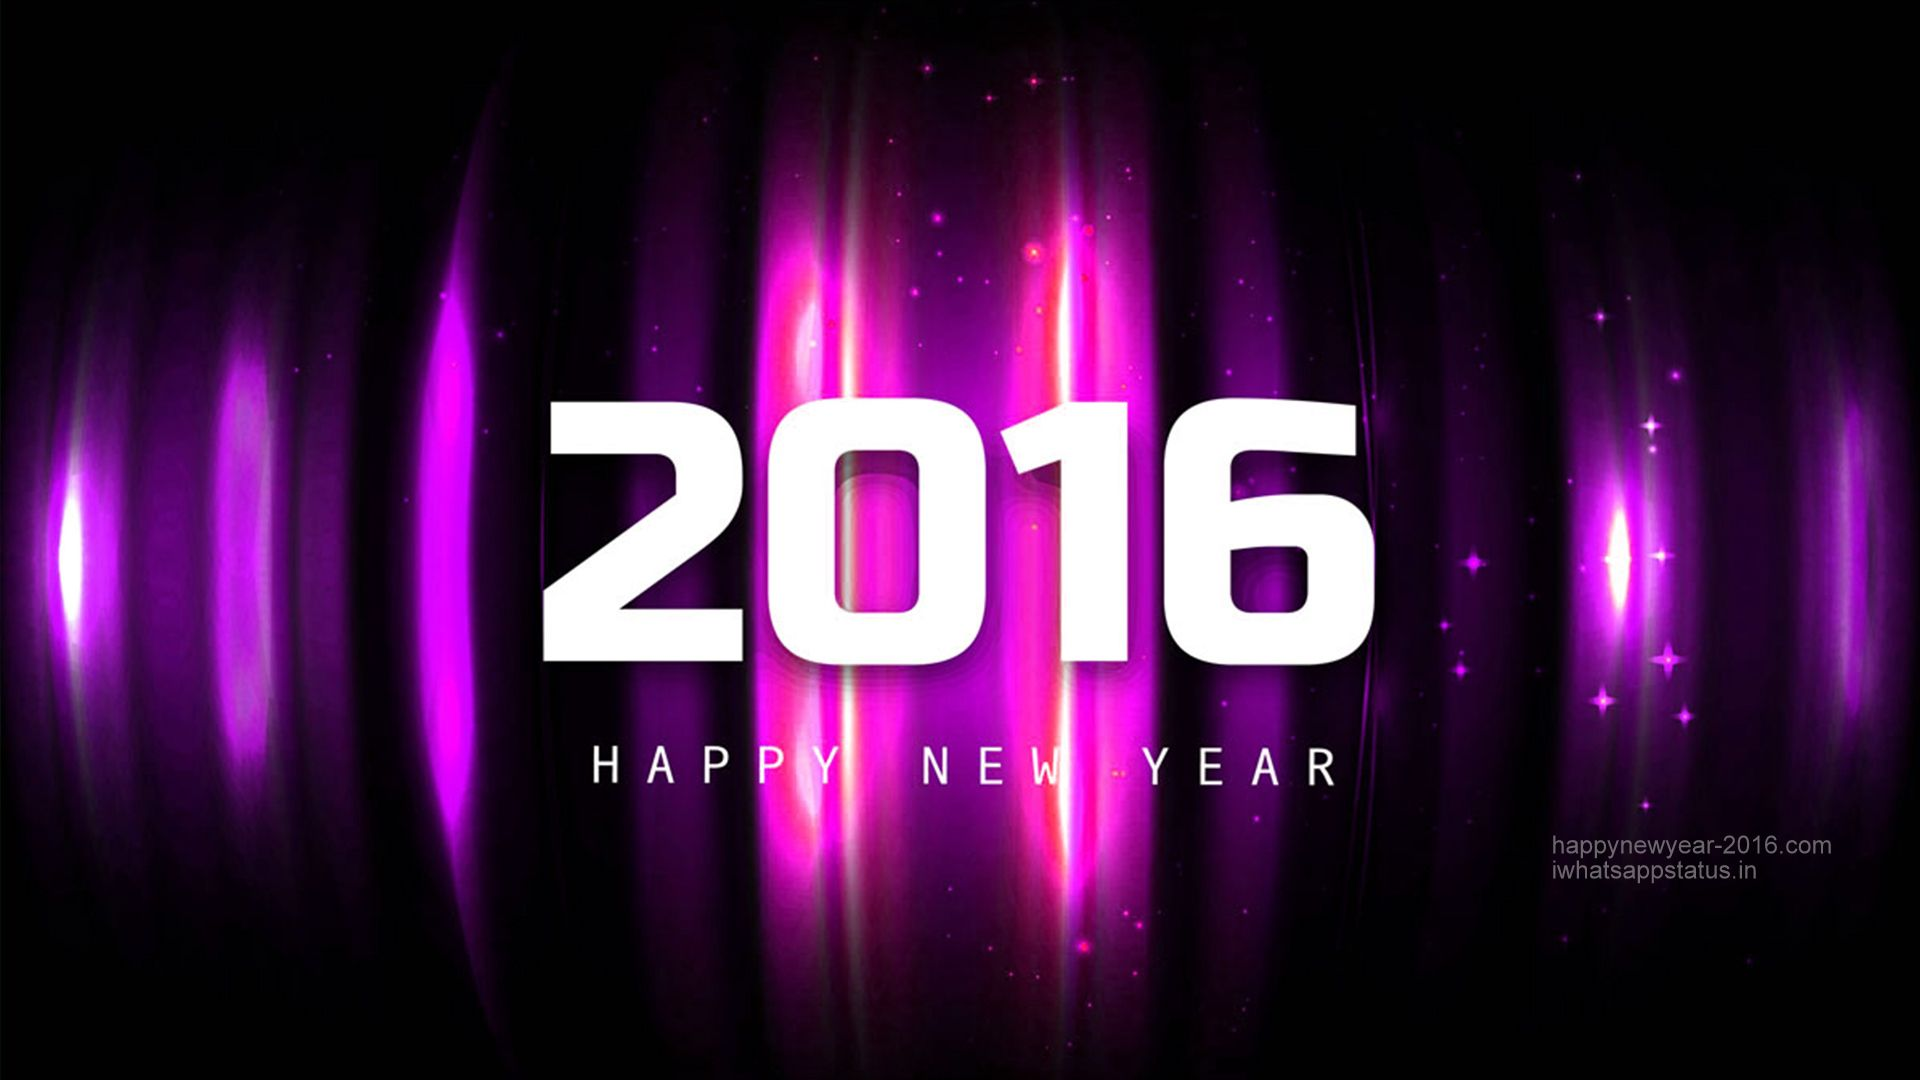 Wishing You A Happy New Year Happy New Year Wishes 2016